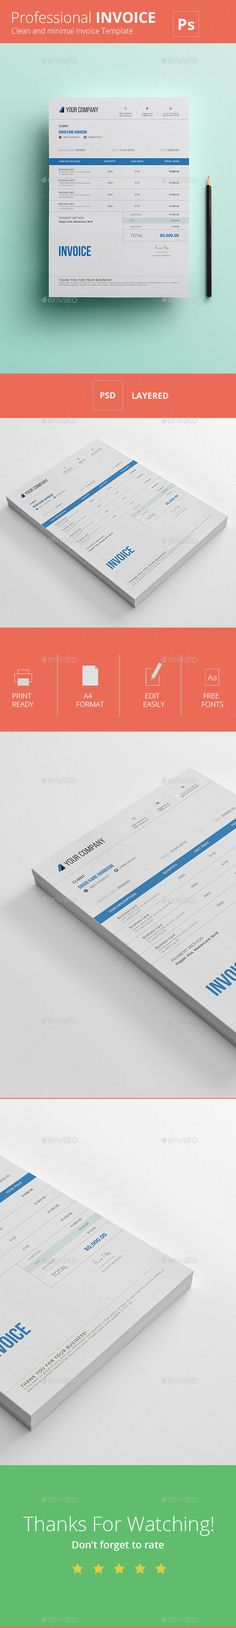 Proposal Template Suisse Design with Invoice on Behance identity - web design invoice